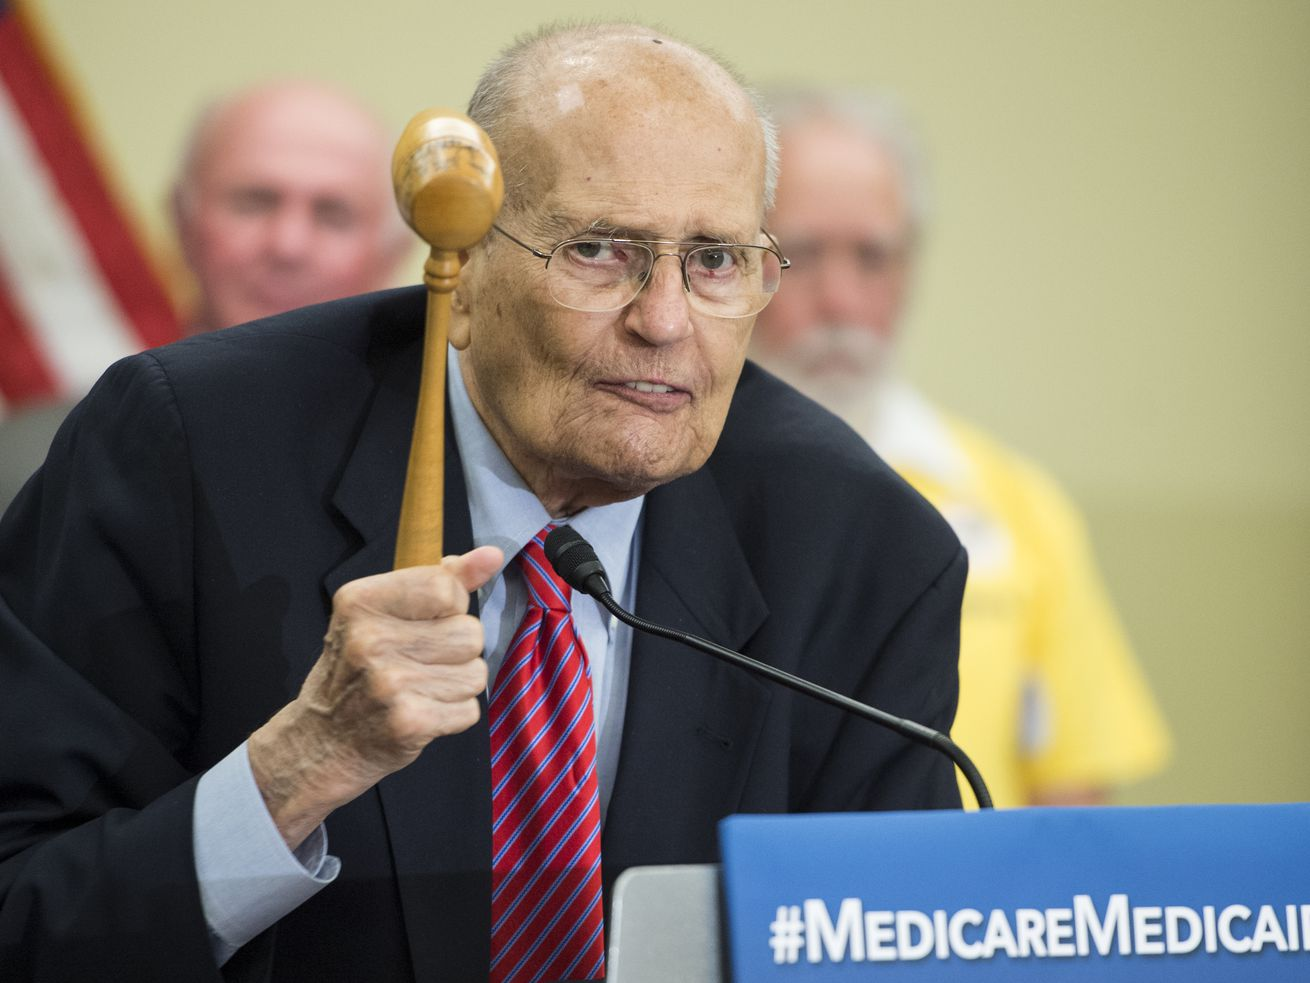 Rep. John Dingell, who died at age 92 on Thursday, celebrates the 50th anniversary of Medicare's passage in 2015 with the gavel he used to preside over that historic vote.